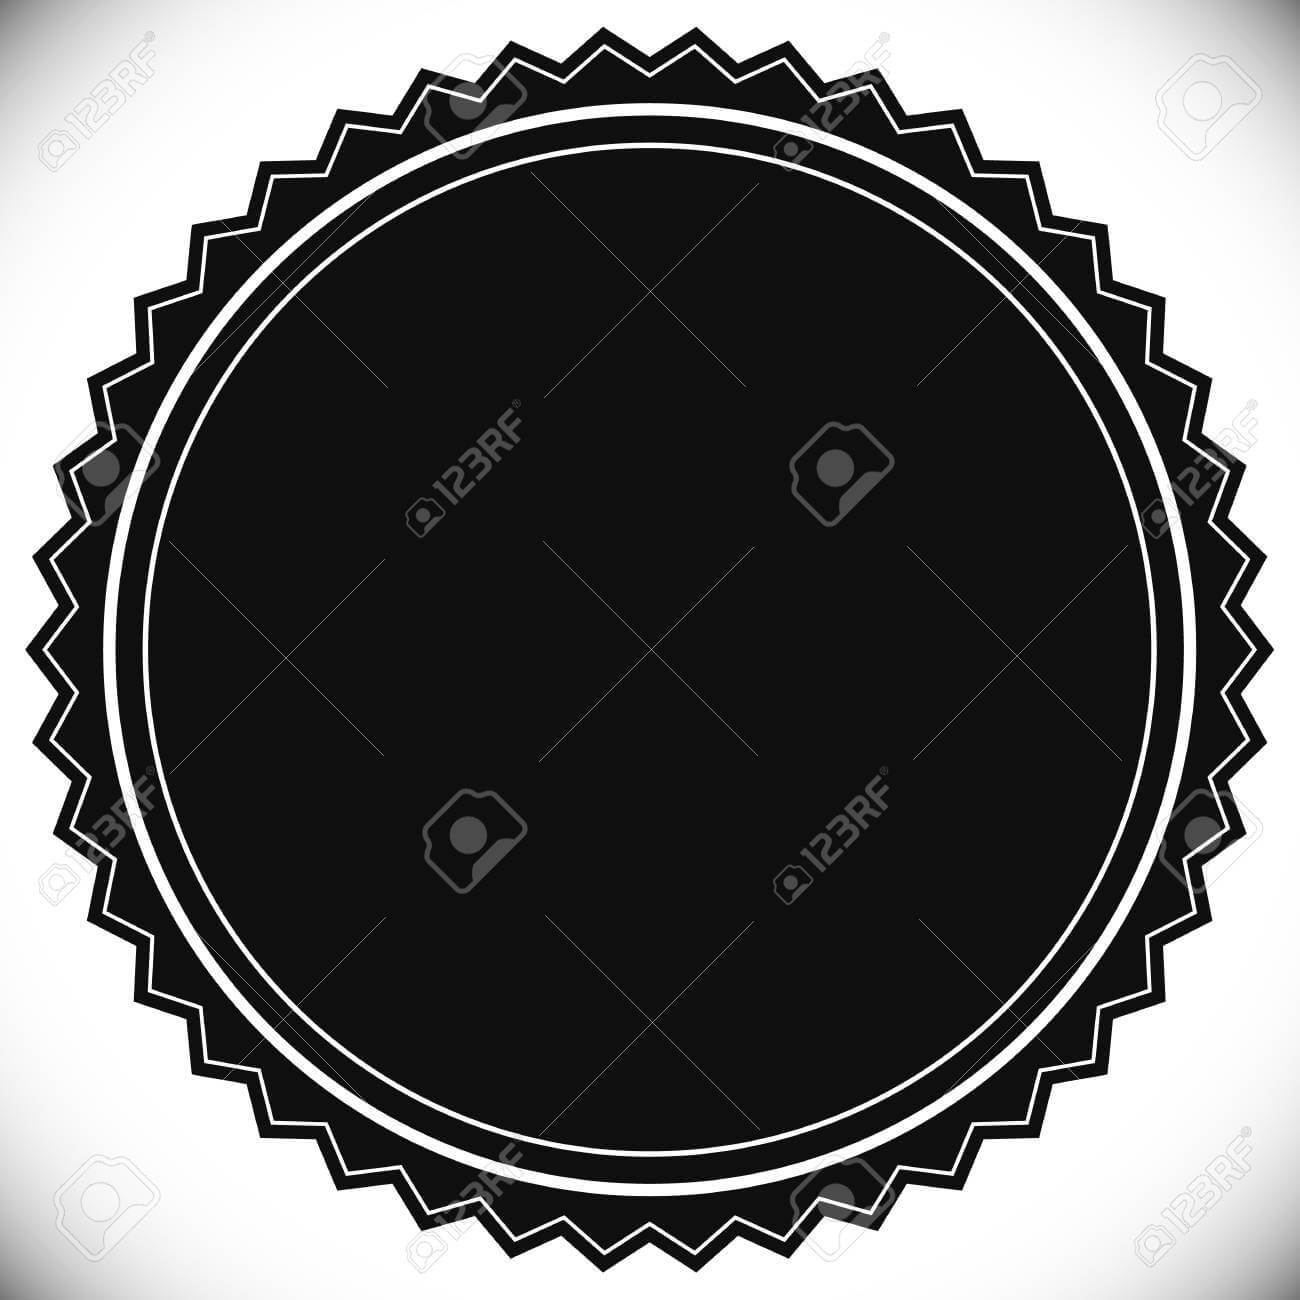 Blank Empty Stamp, Seal Or Badge Template For Blank Seal Template